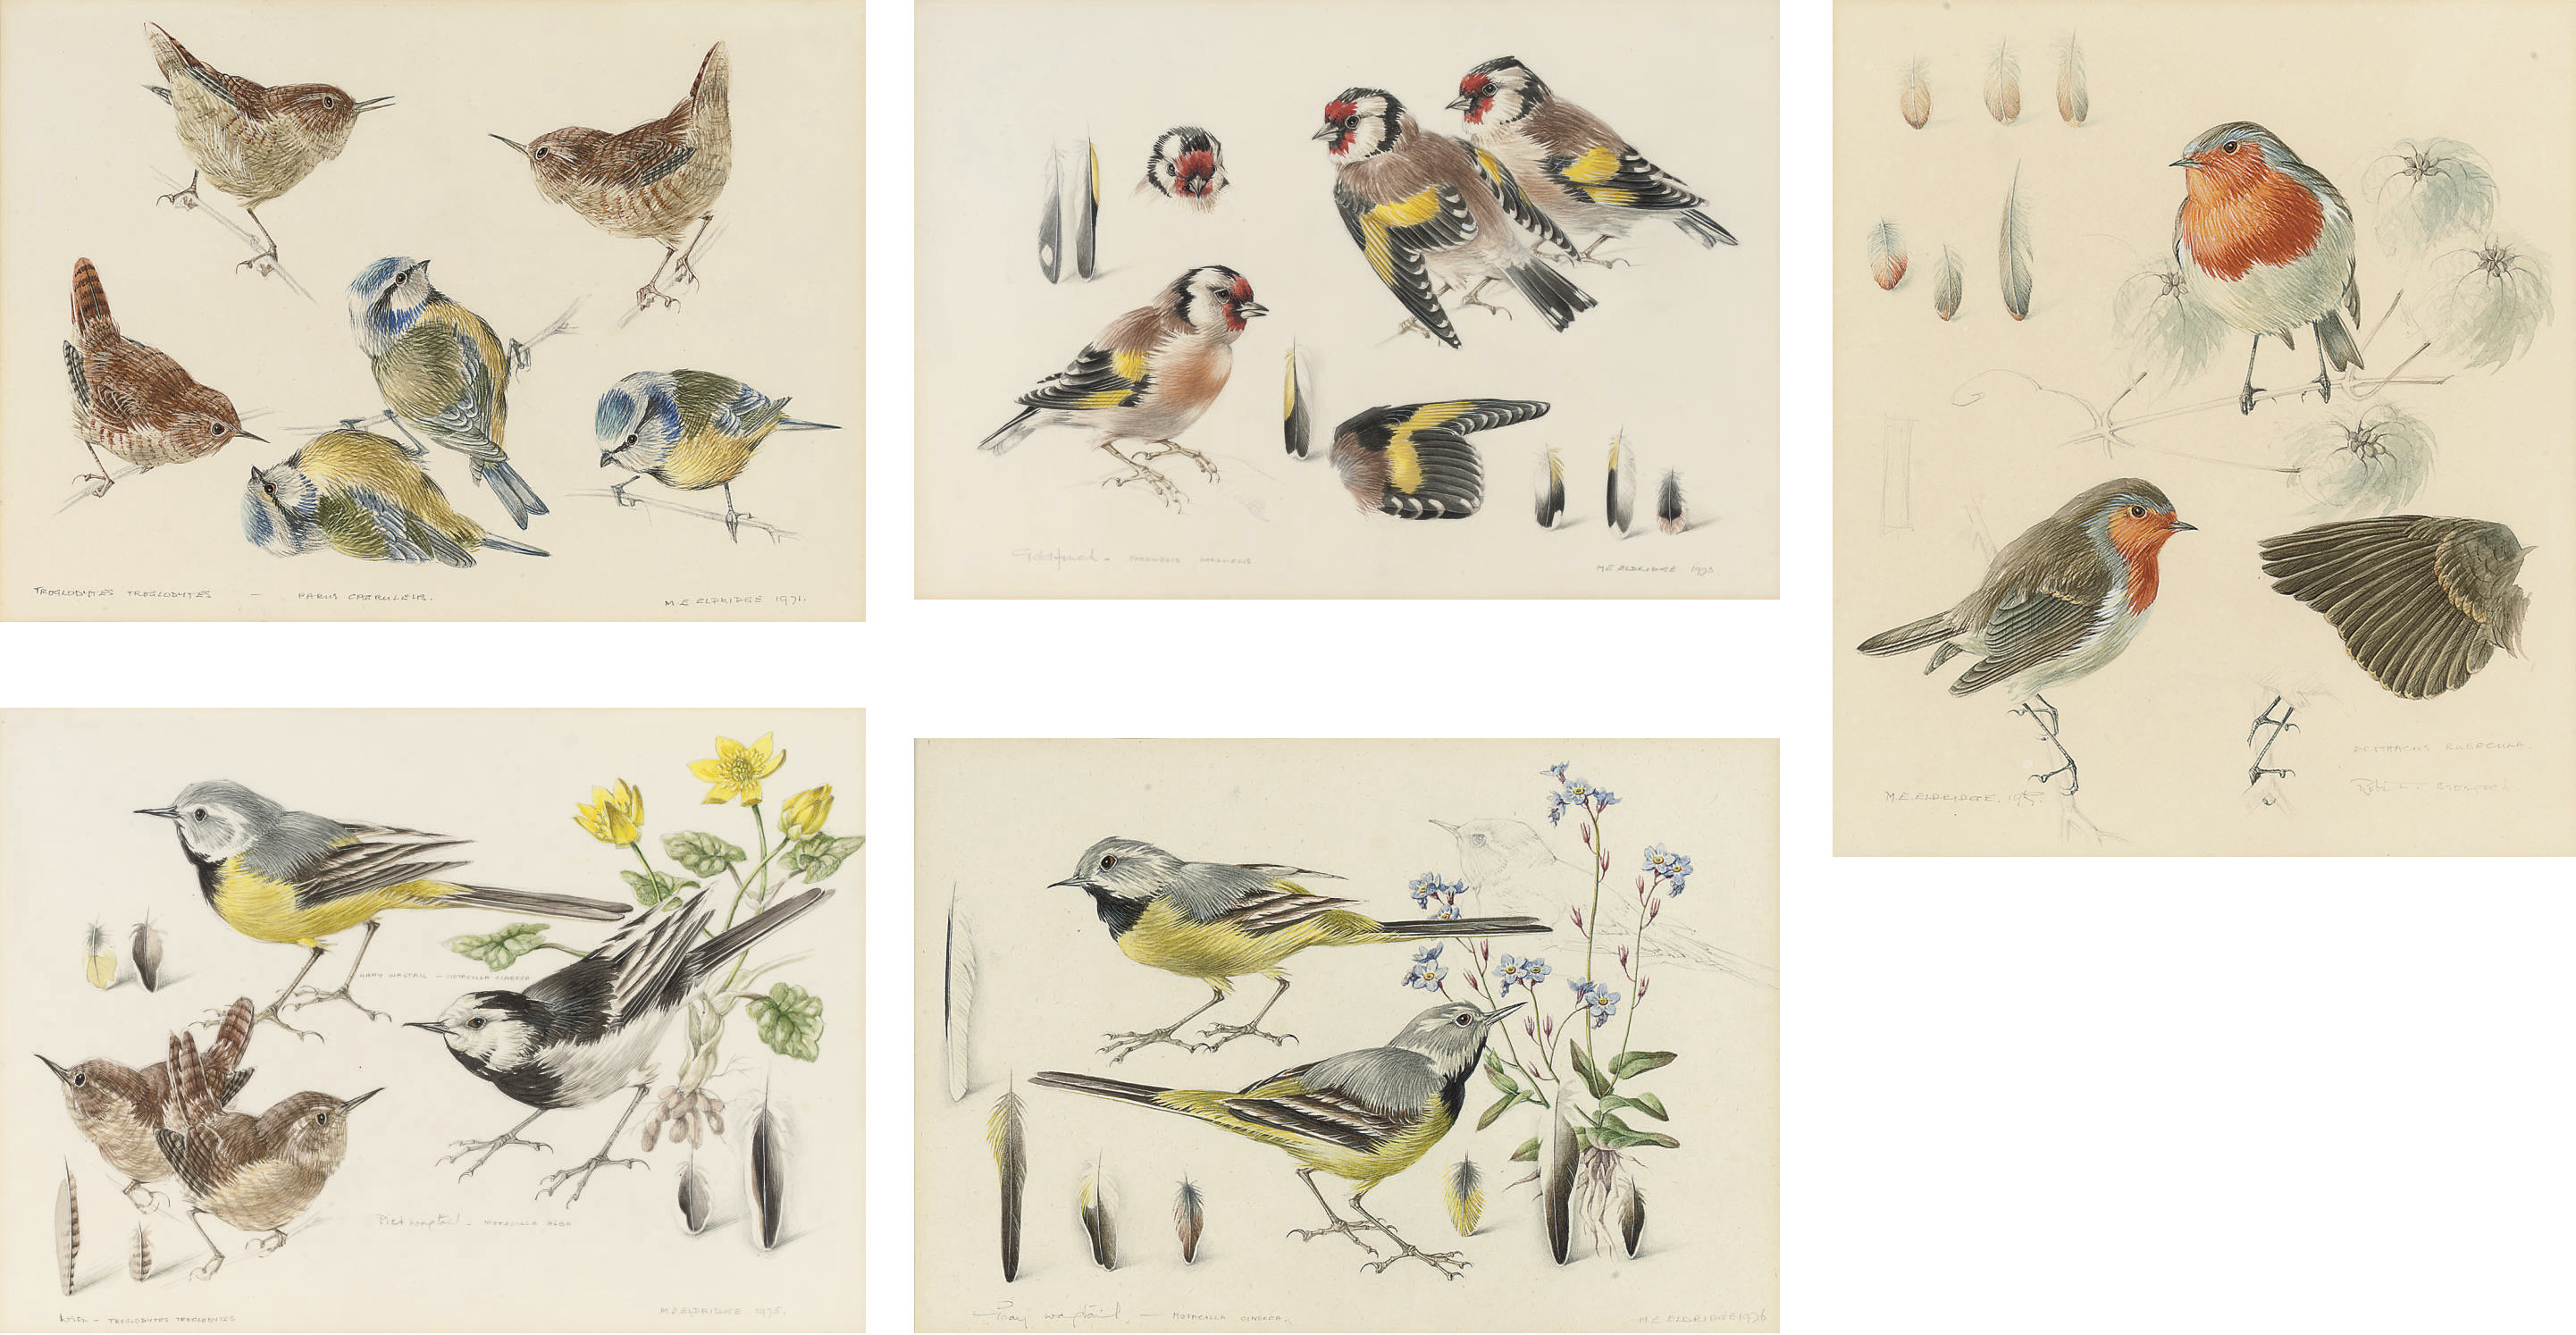 Gray Wagtails; The Common Wren; Pied Wagtails; Goldfinches; and Robins